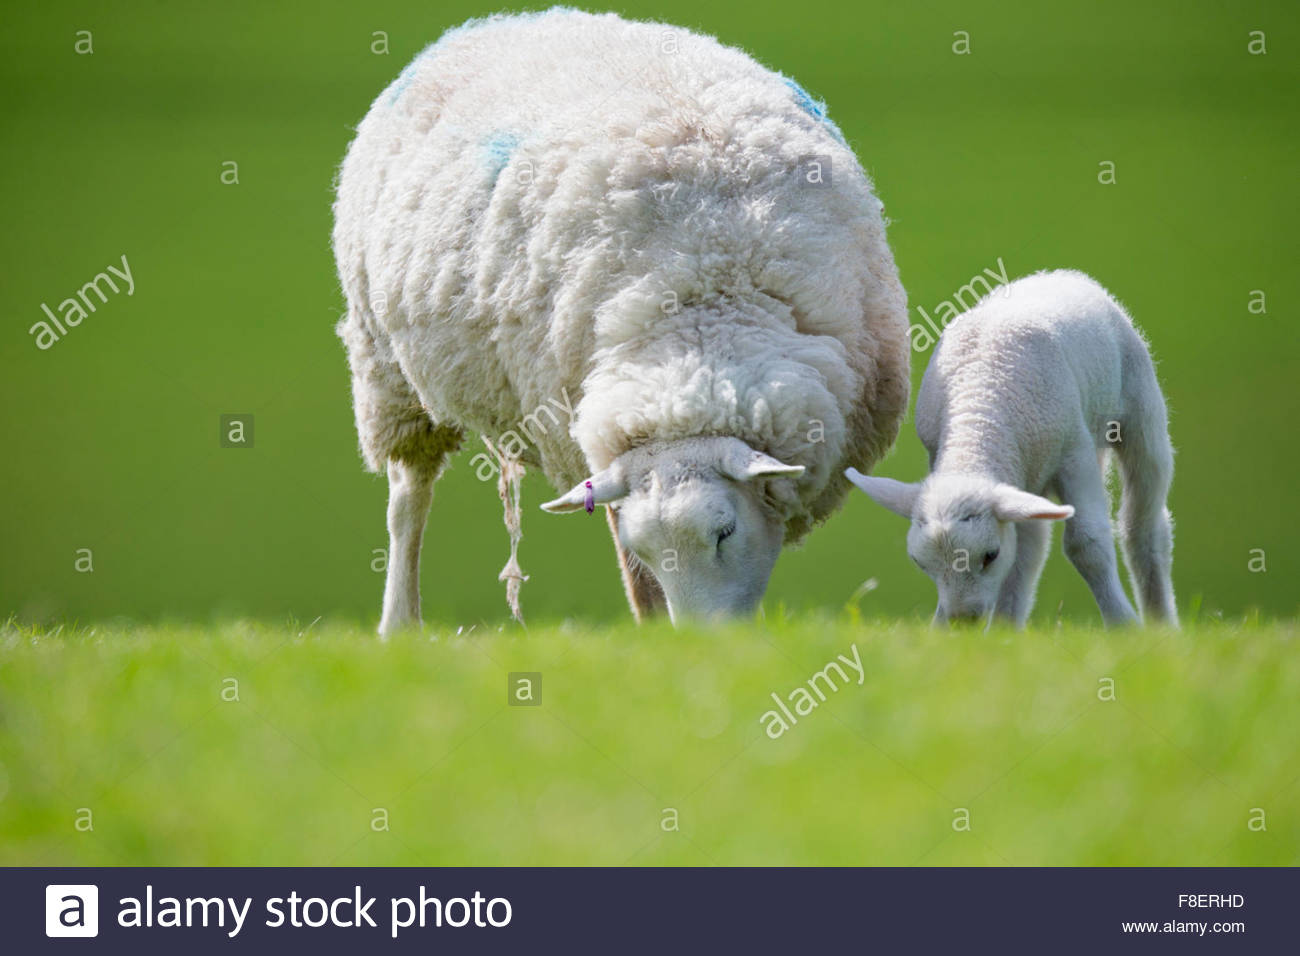 Sheep and lamb grazing in green spring field - Stock Image